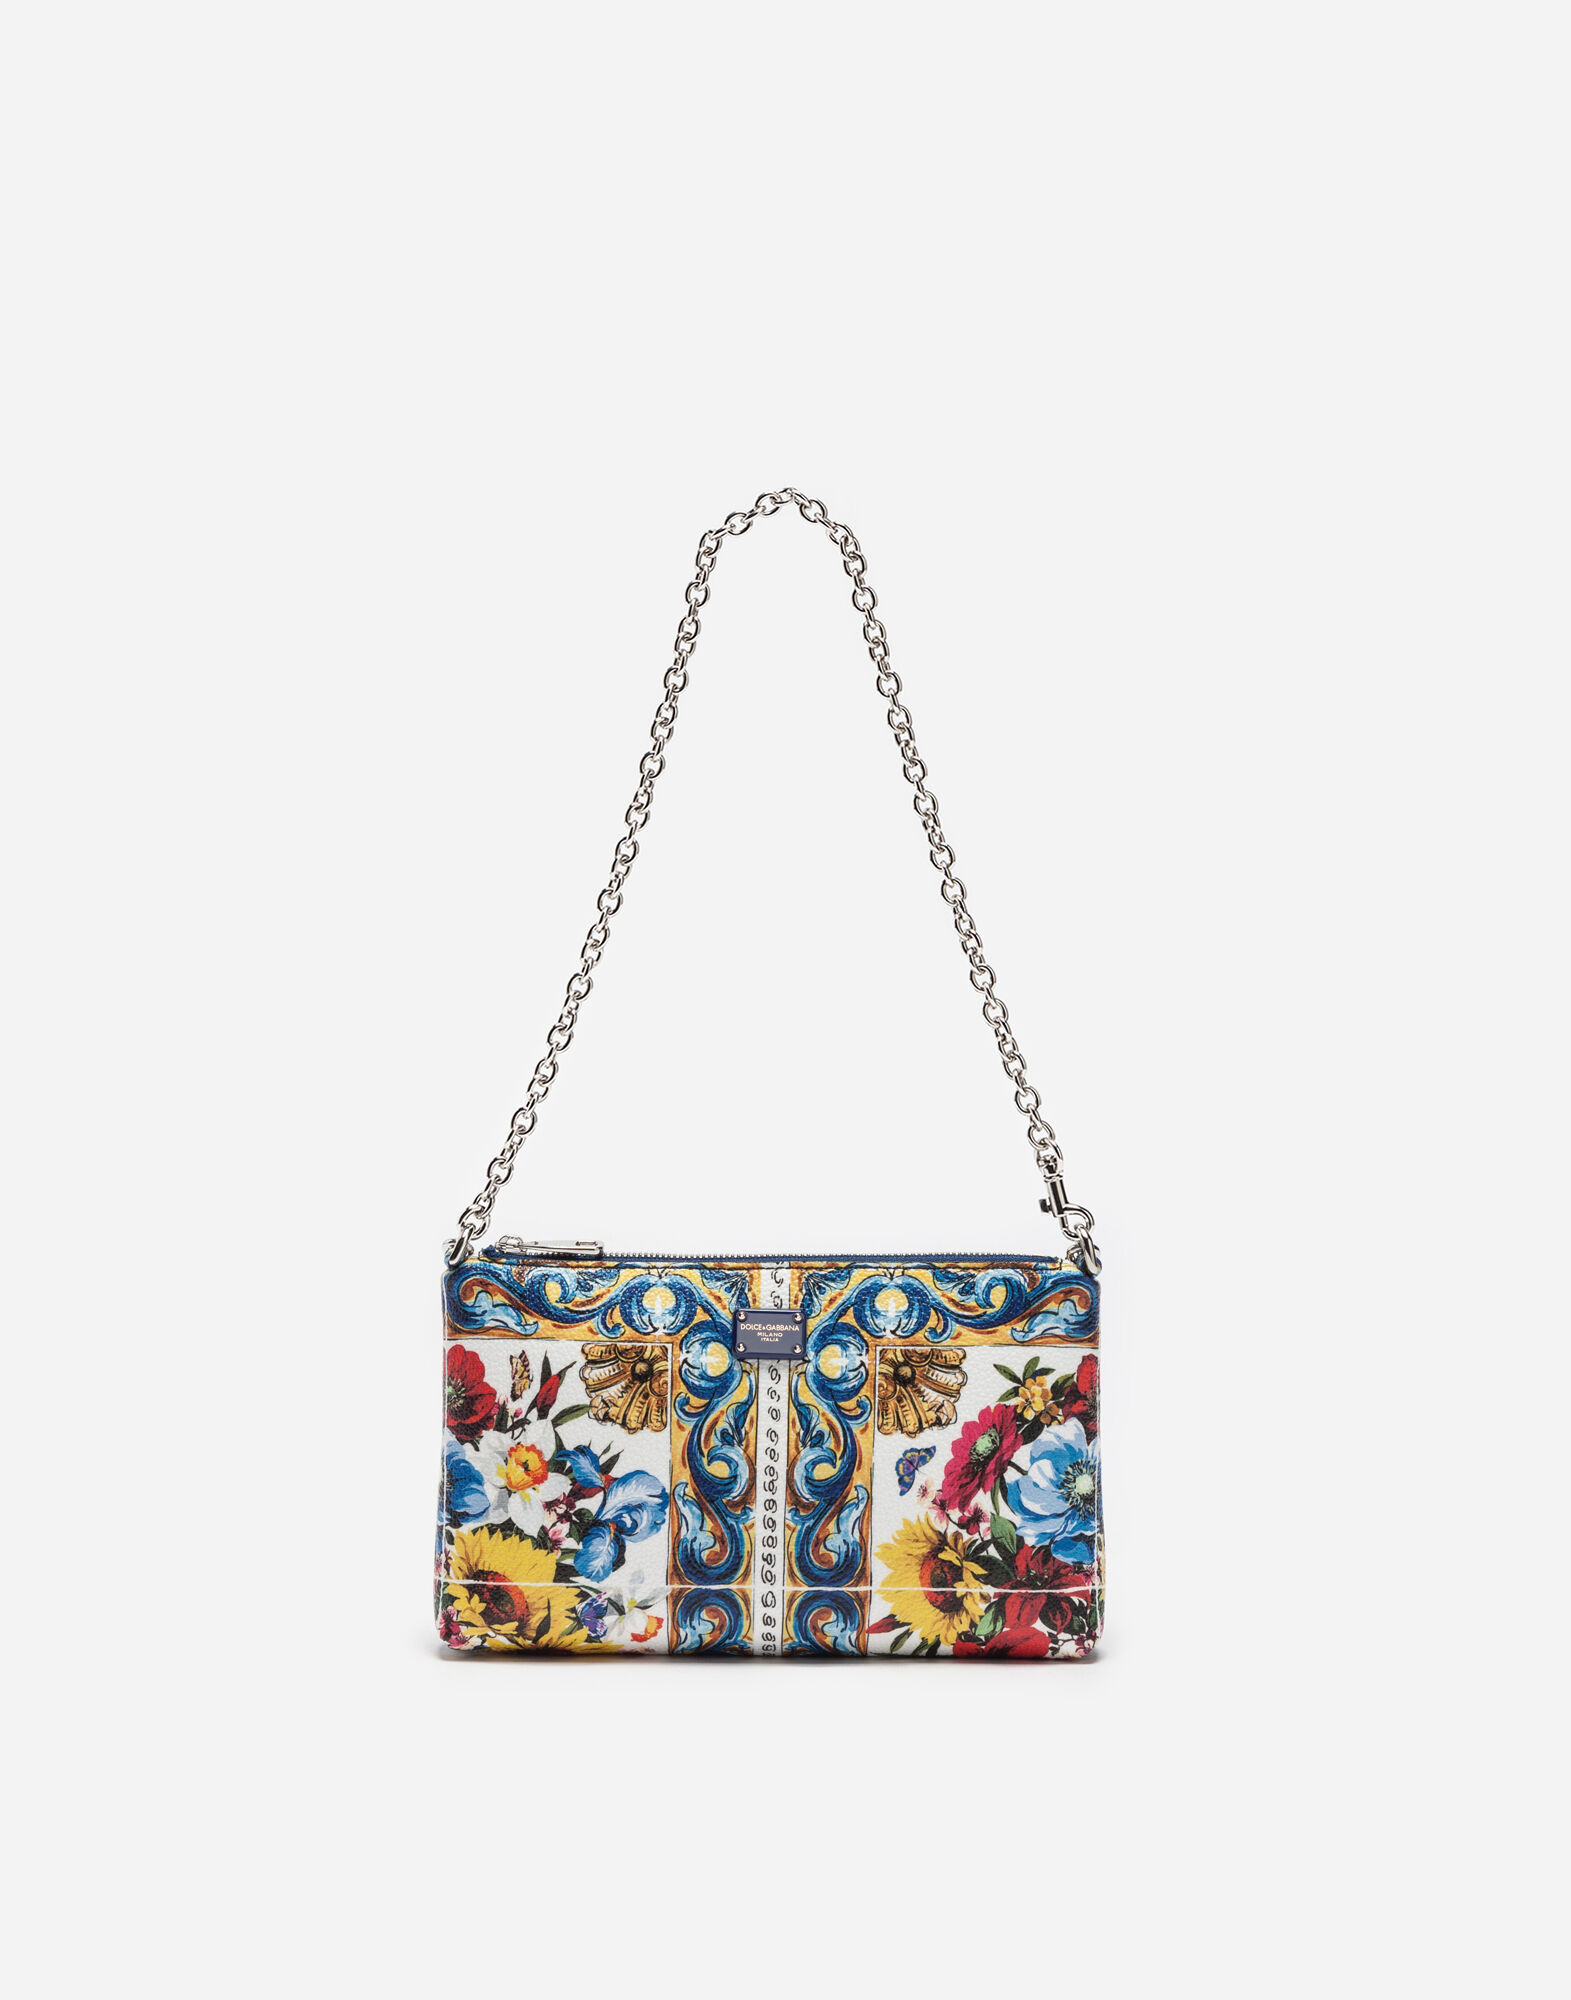 MINI BAG IN PRINTED RESINATED FABRIC